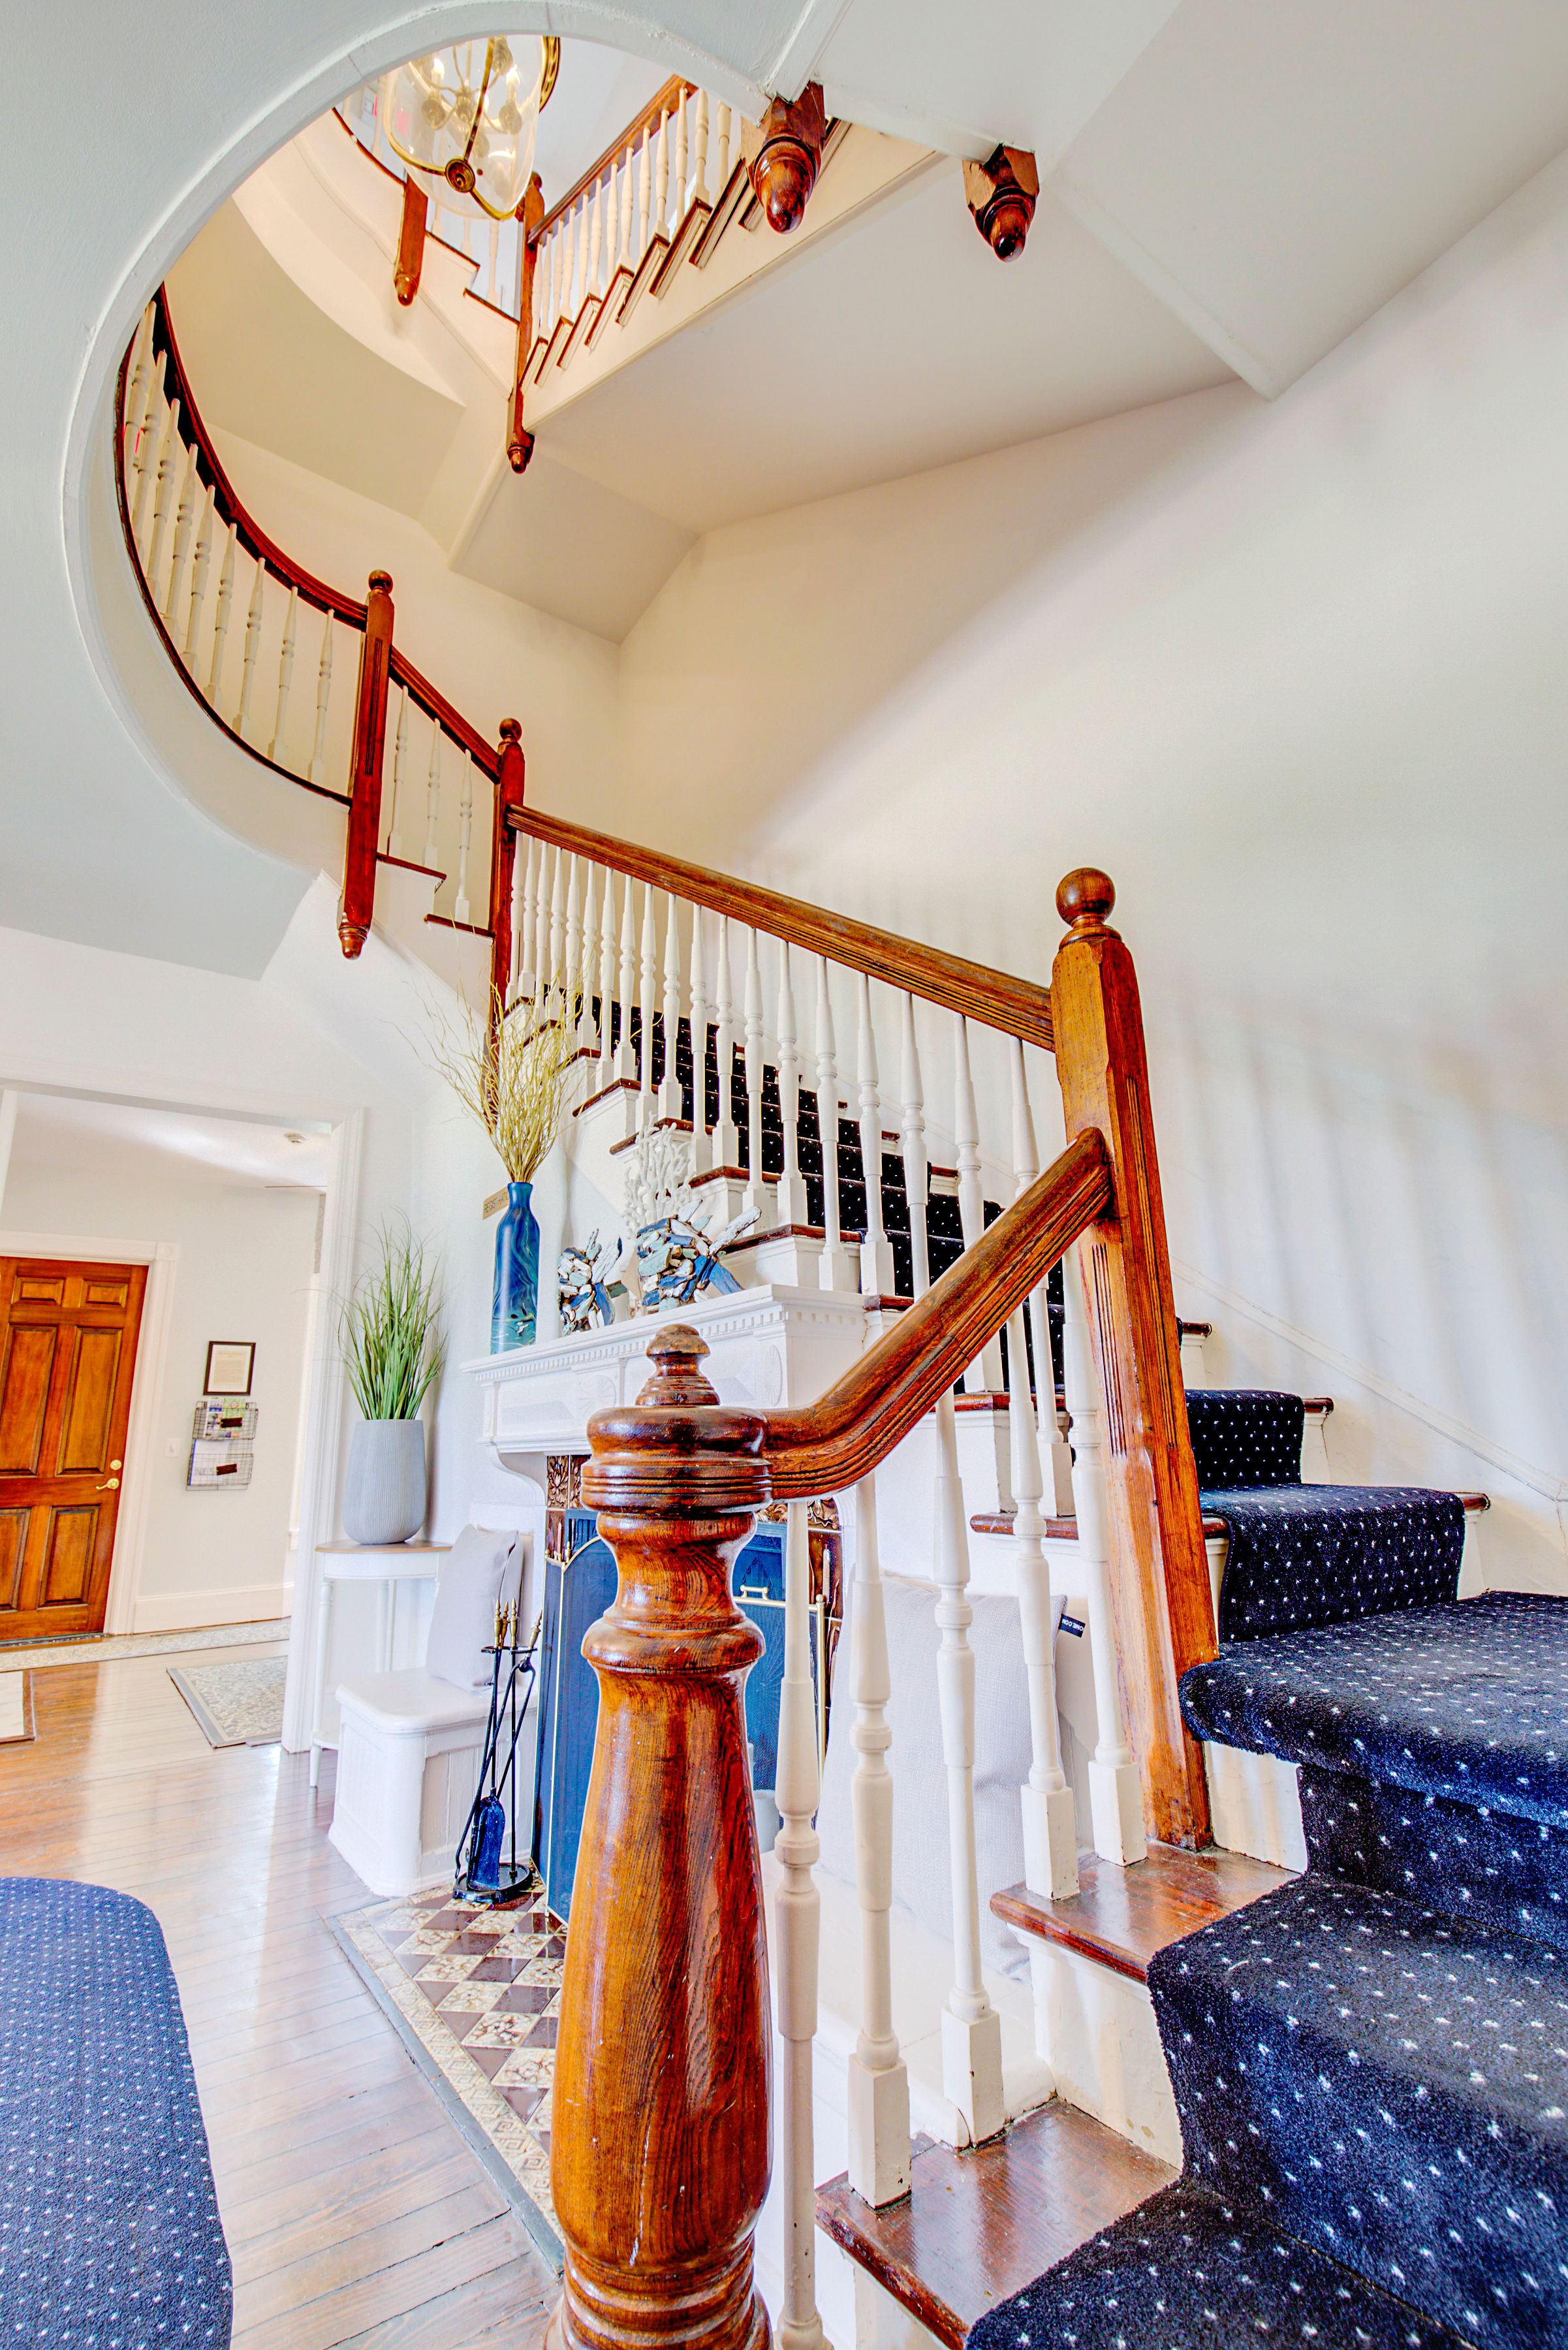 Spiral Staircase to second floor